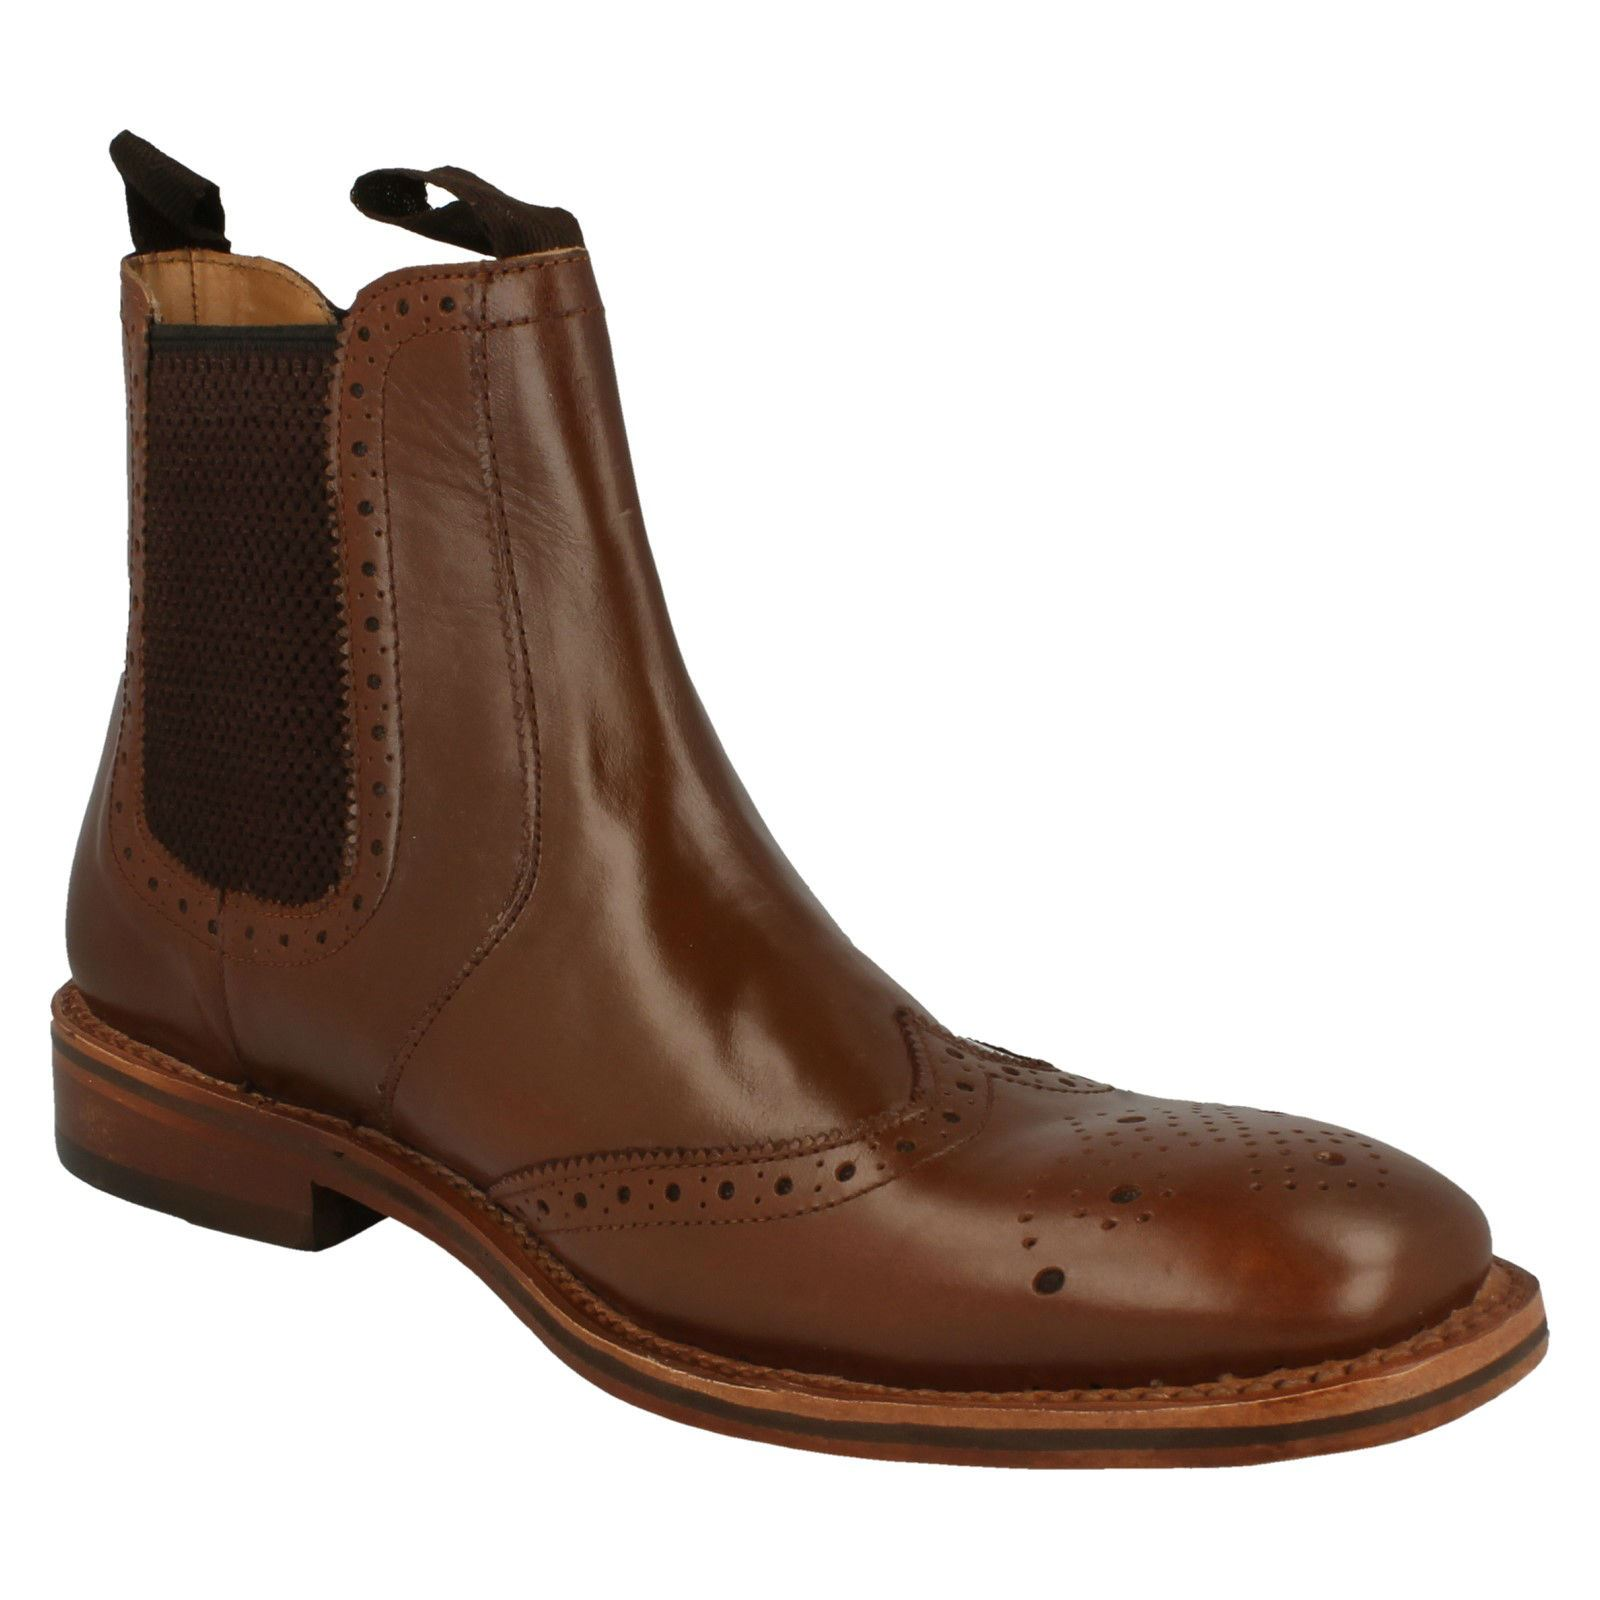 Mens-Catesby-Ankle-Boots-MCATESCW158T thumbnail 10